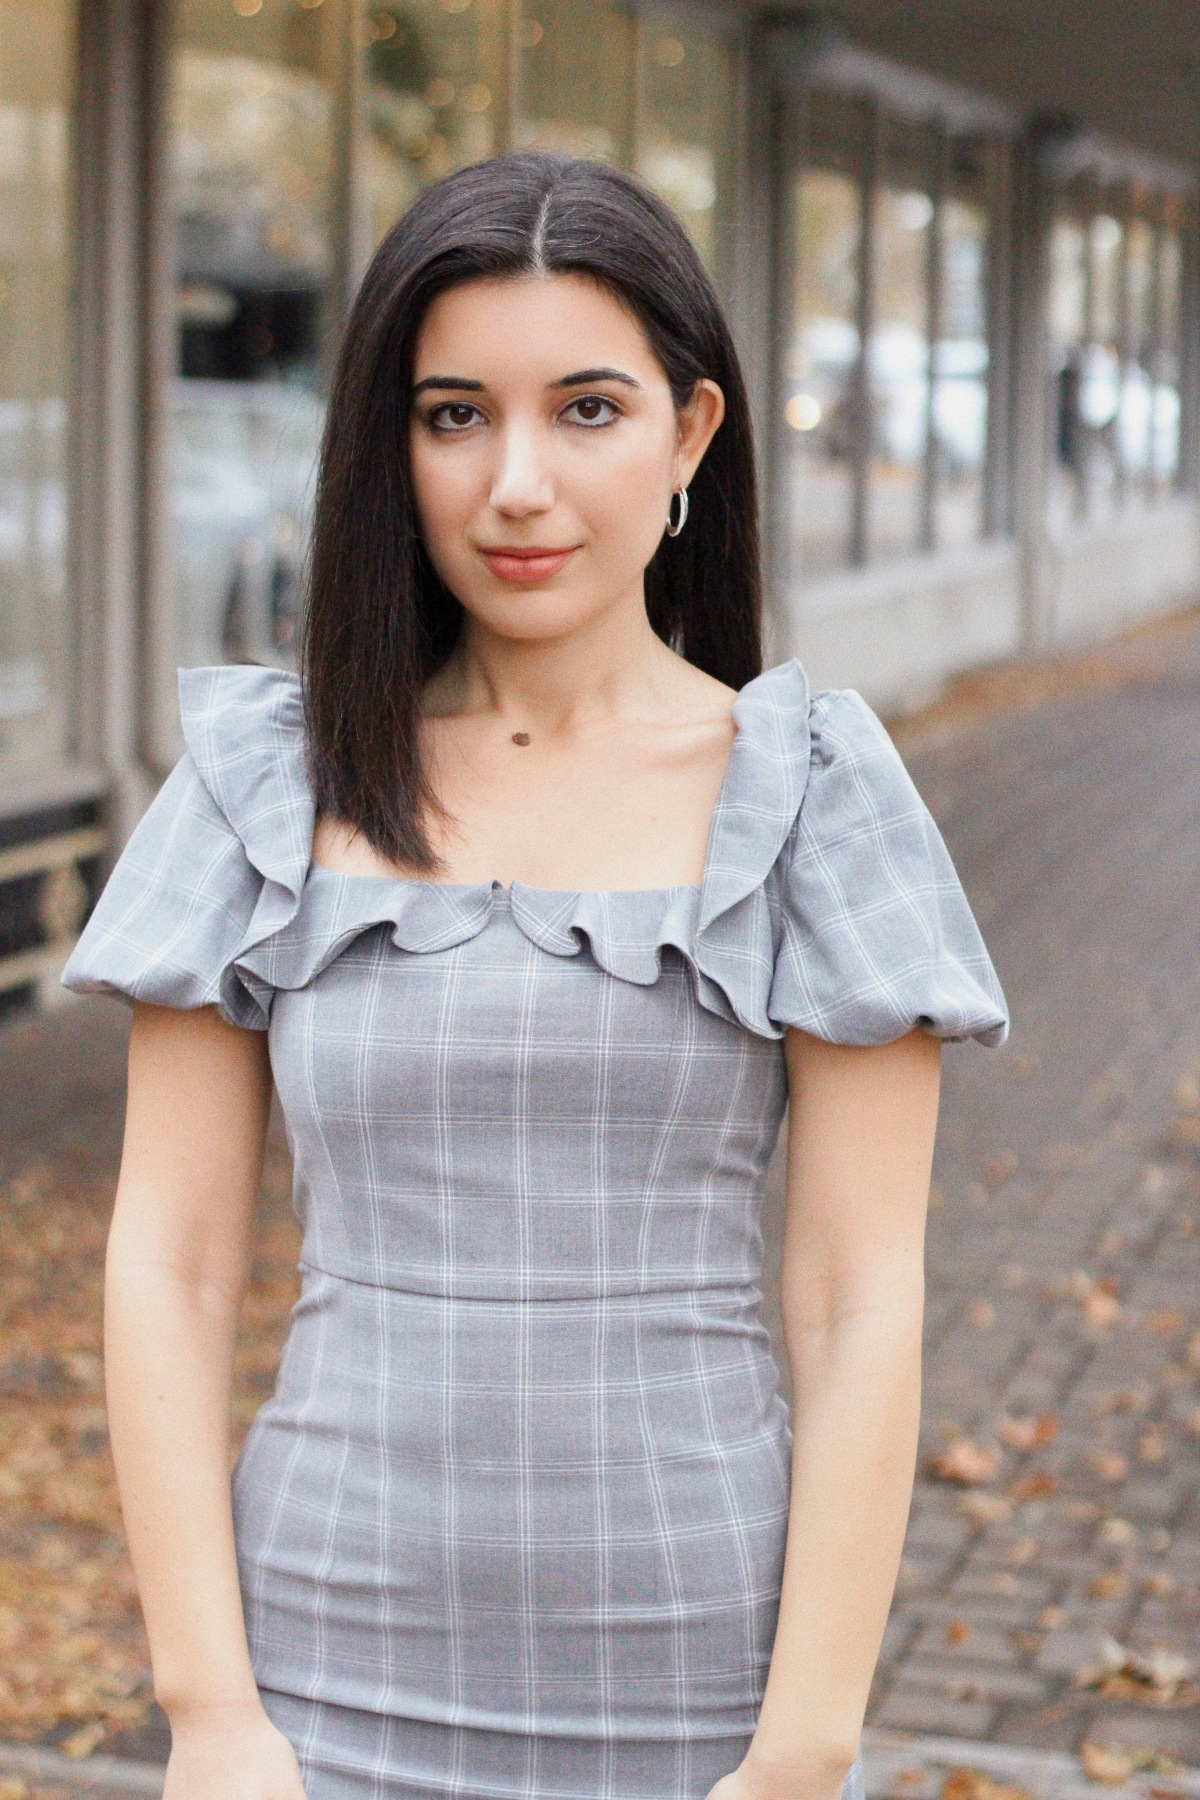 J.ing, winter fashion, winter style, winter style 2019, fashion editorial, lookbook, ootd magazine, plaid dress, gray dress, ruffles, puffy sleeves, silver hoop earrings, fashion blogger, vintage style, Little Women fashion, over-the-knee boots, suede black boots